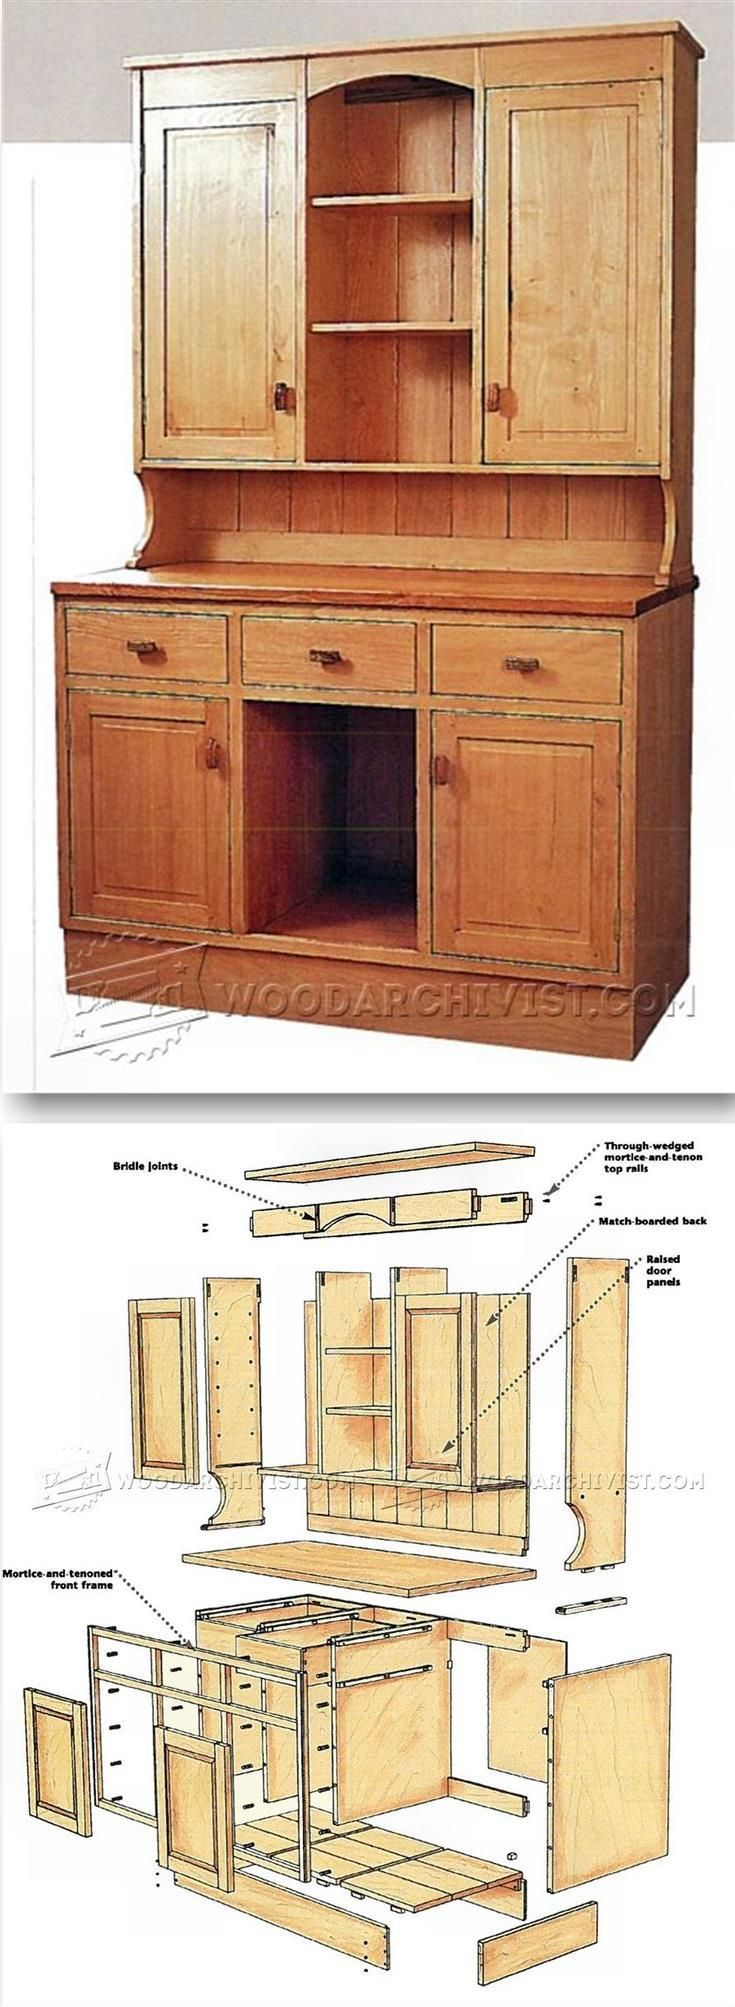 Kitchen Furnitur 17 Best Ideas About Kitchen Furniture On Pinterest Handmade